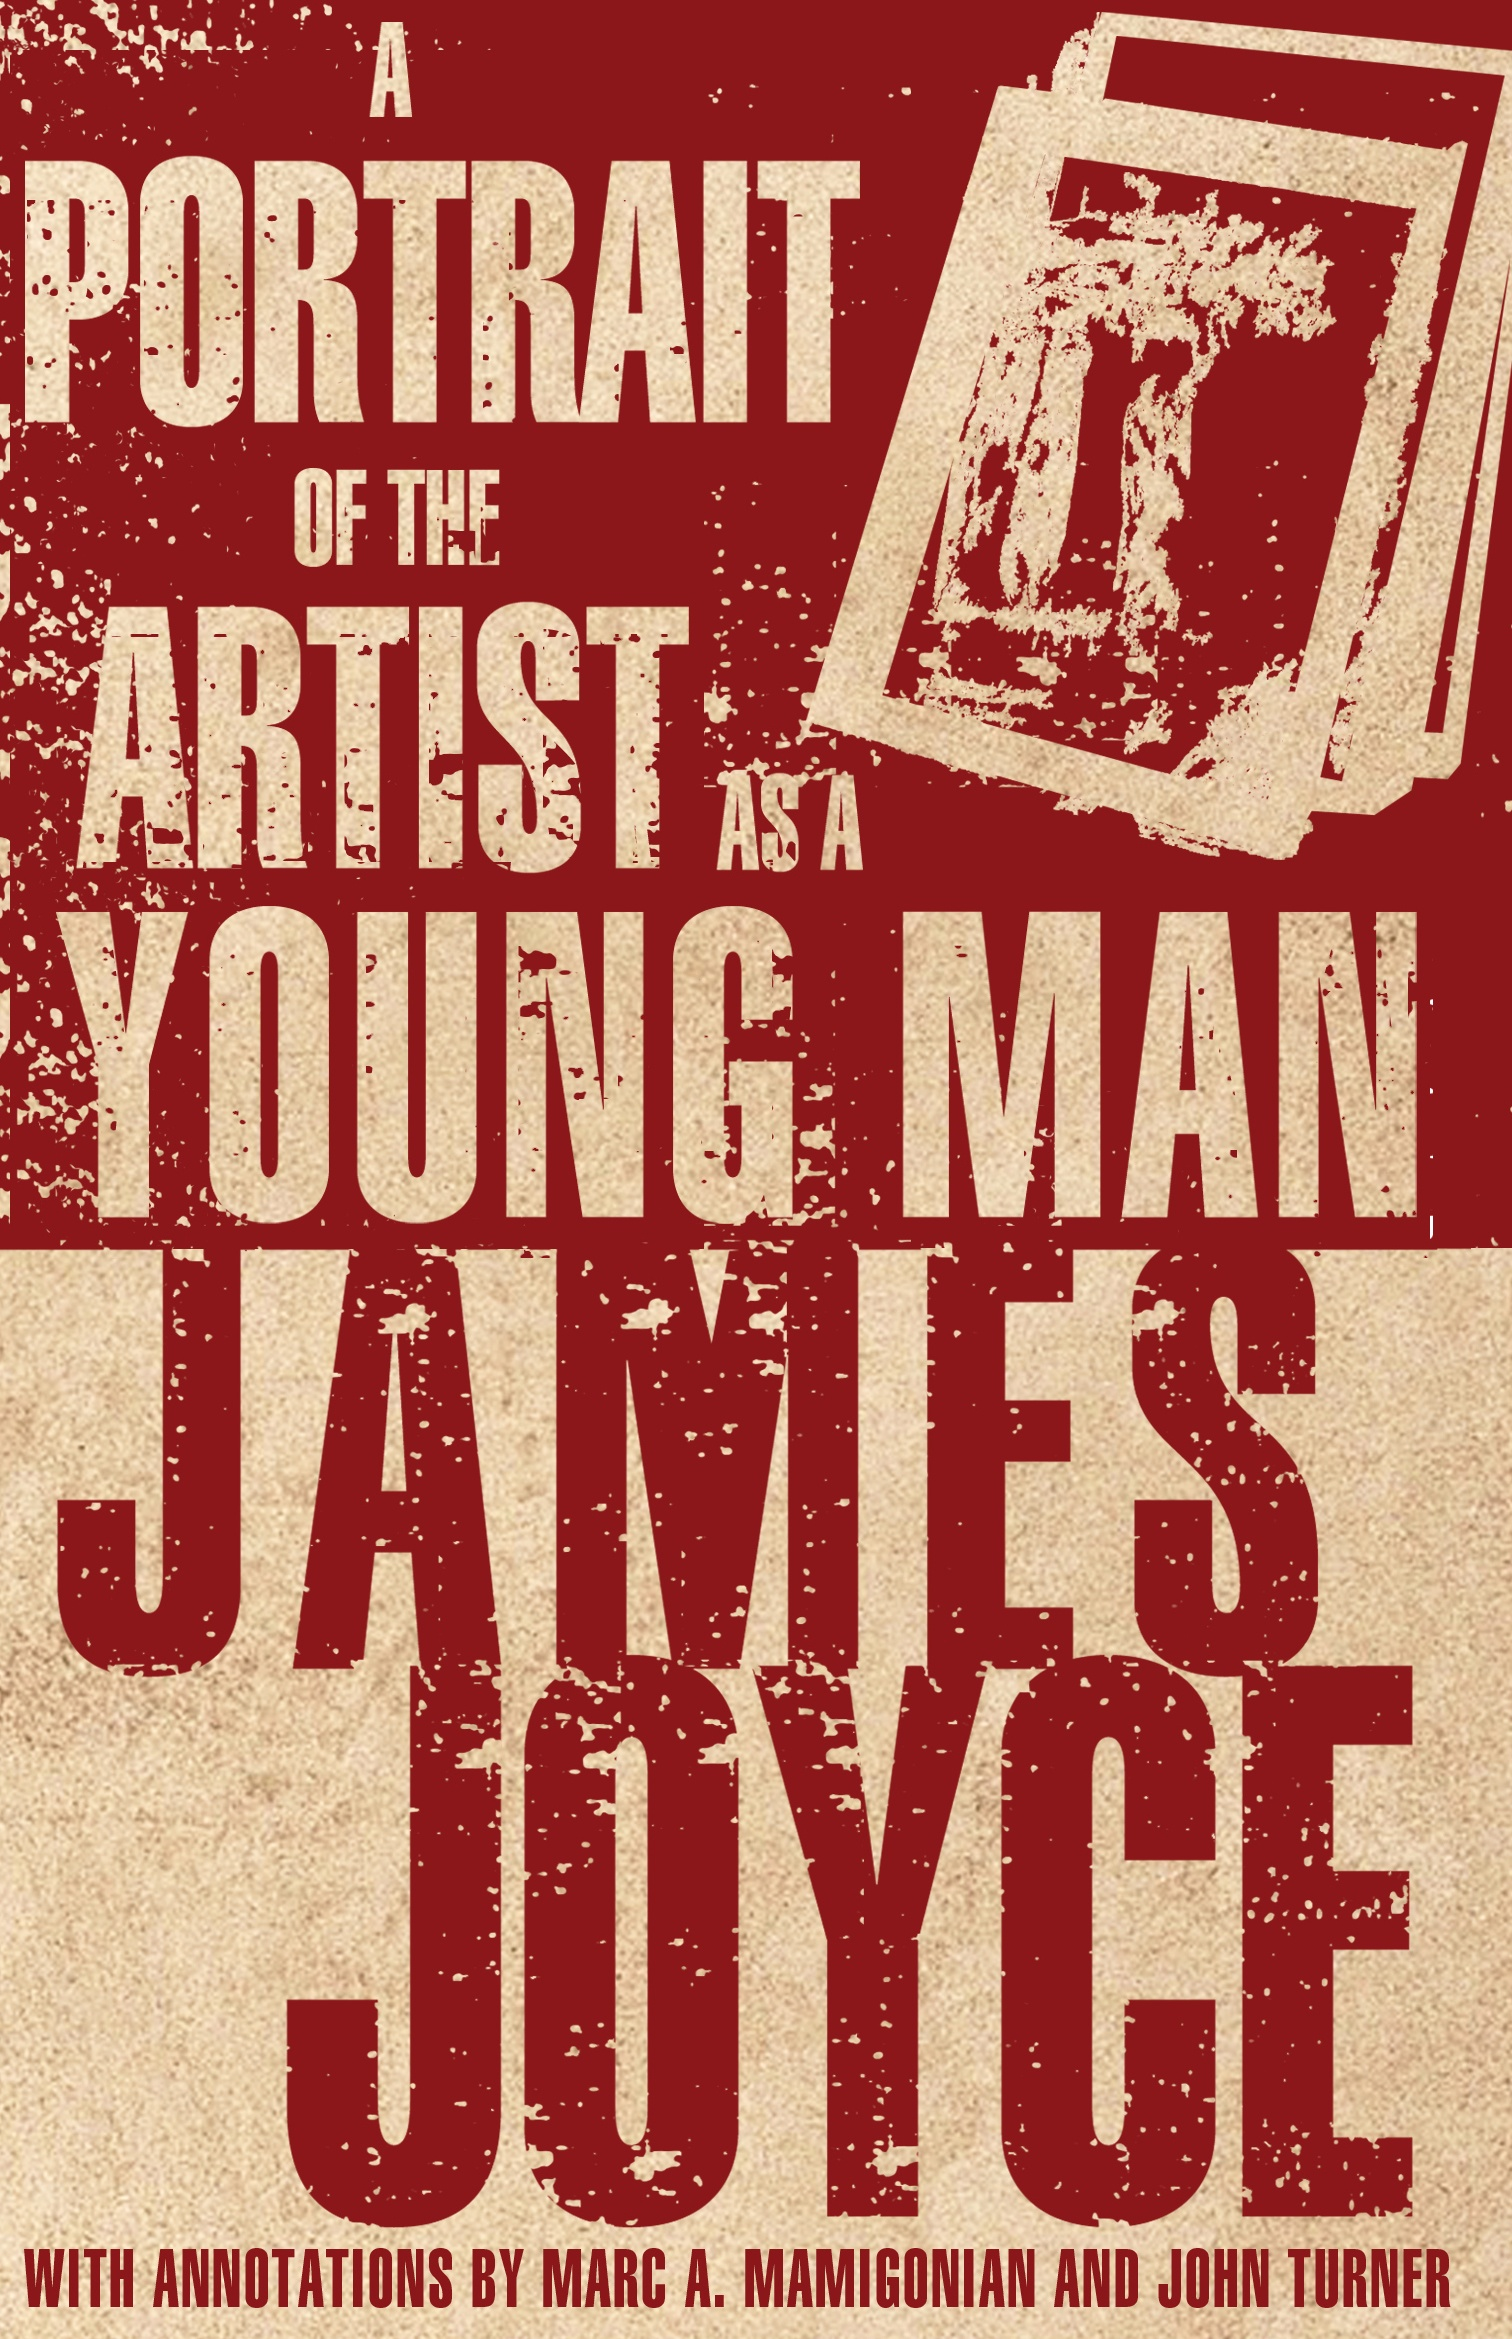 Literary themes in A Portrait of An Artist as a Young Man